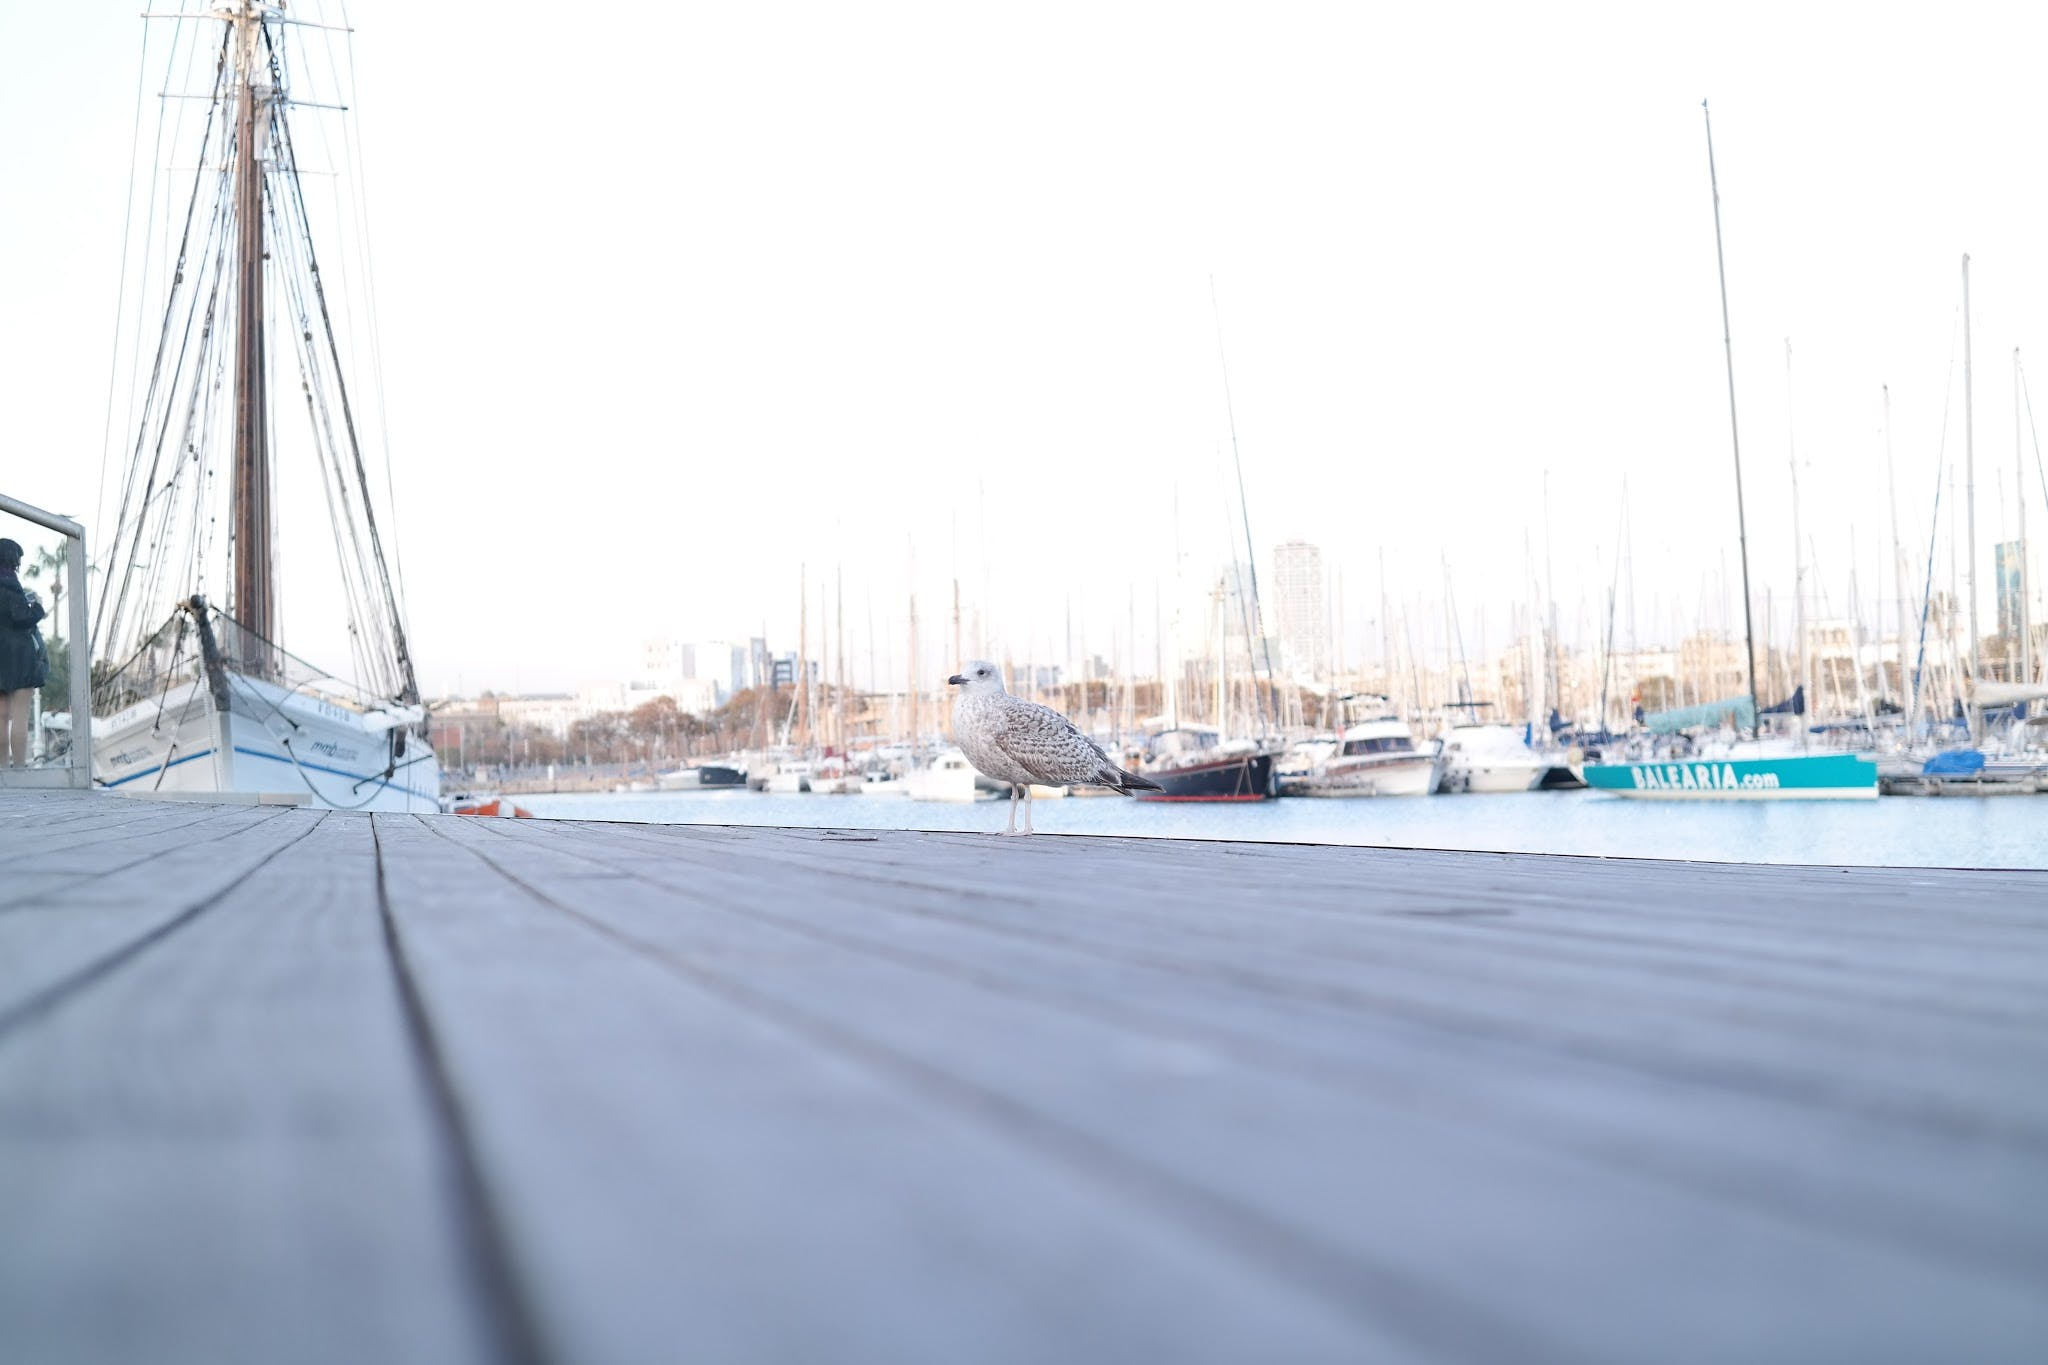 gull, harbour, sailing ships